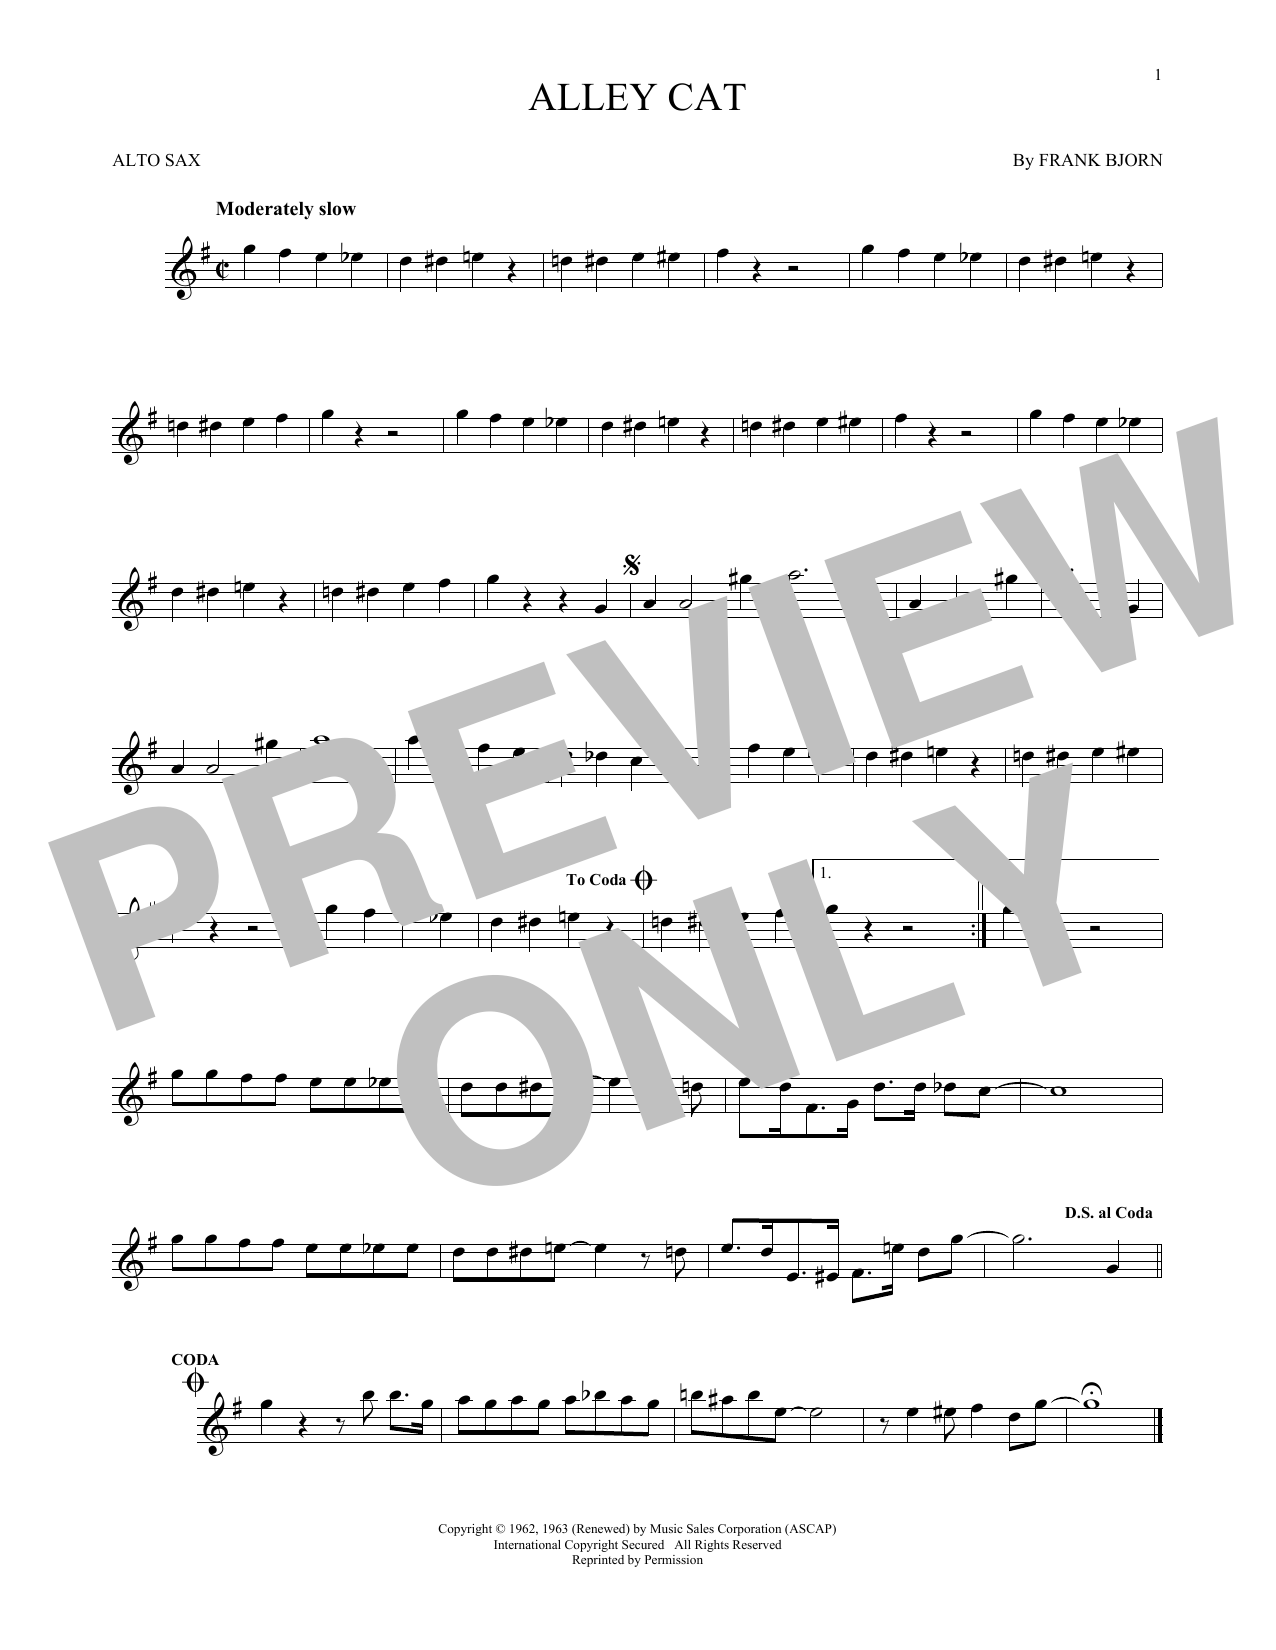 Bent Fabric Alley Cat sheet music notes and chords. Download Printable PDF.